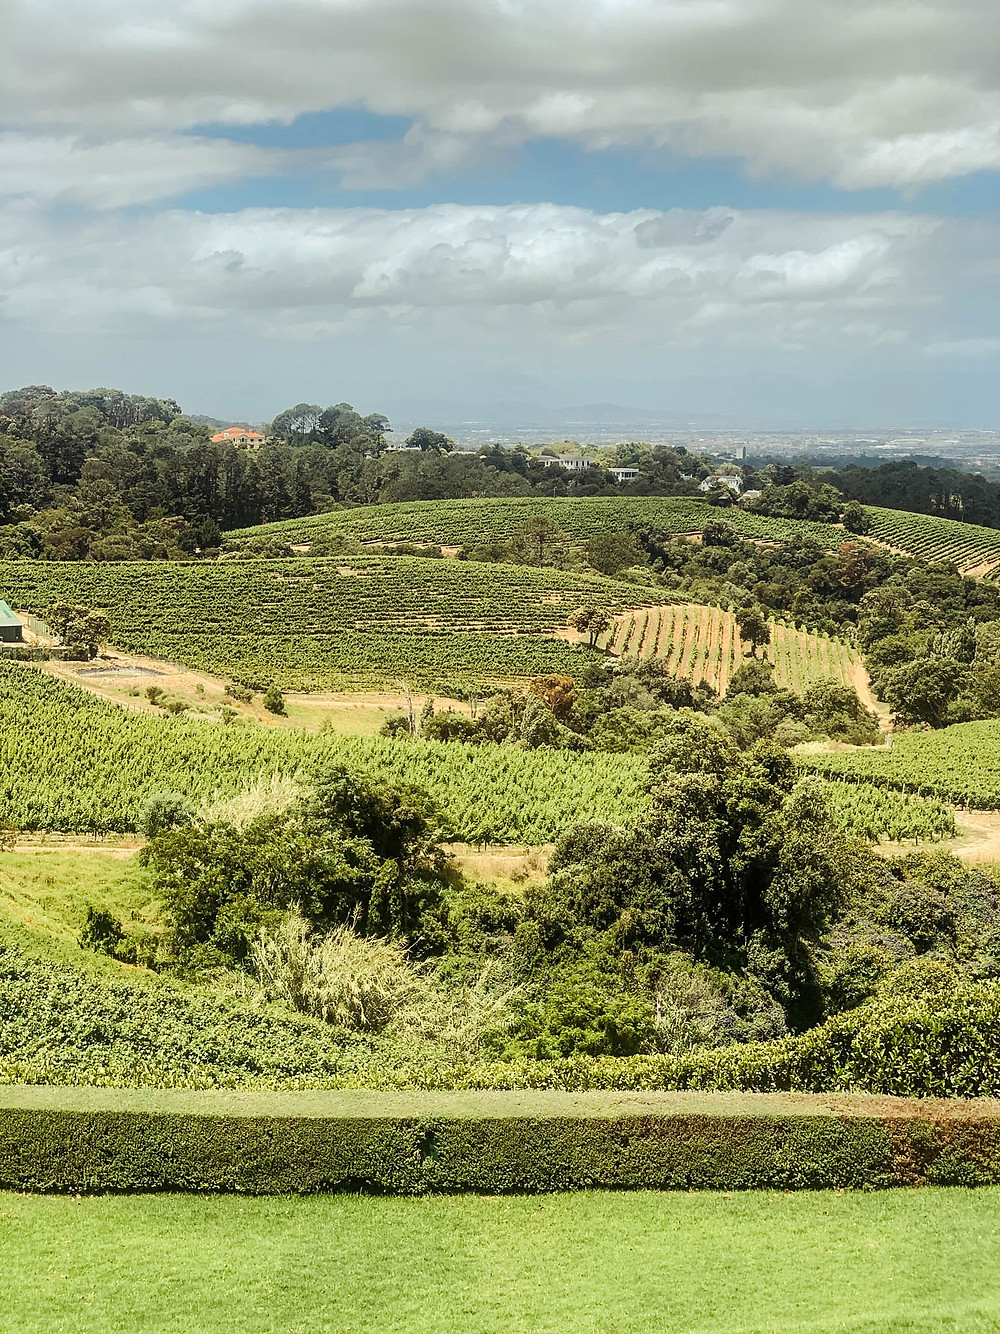 Constantia - Cape Town wine country 15 minutes from downtown!